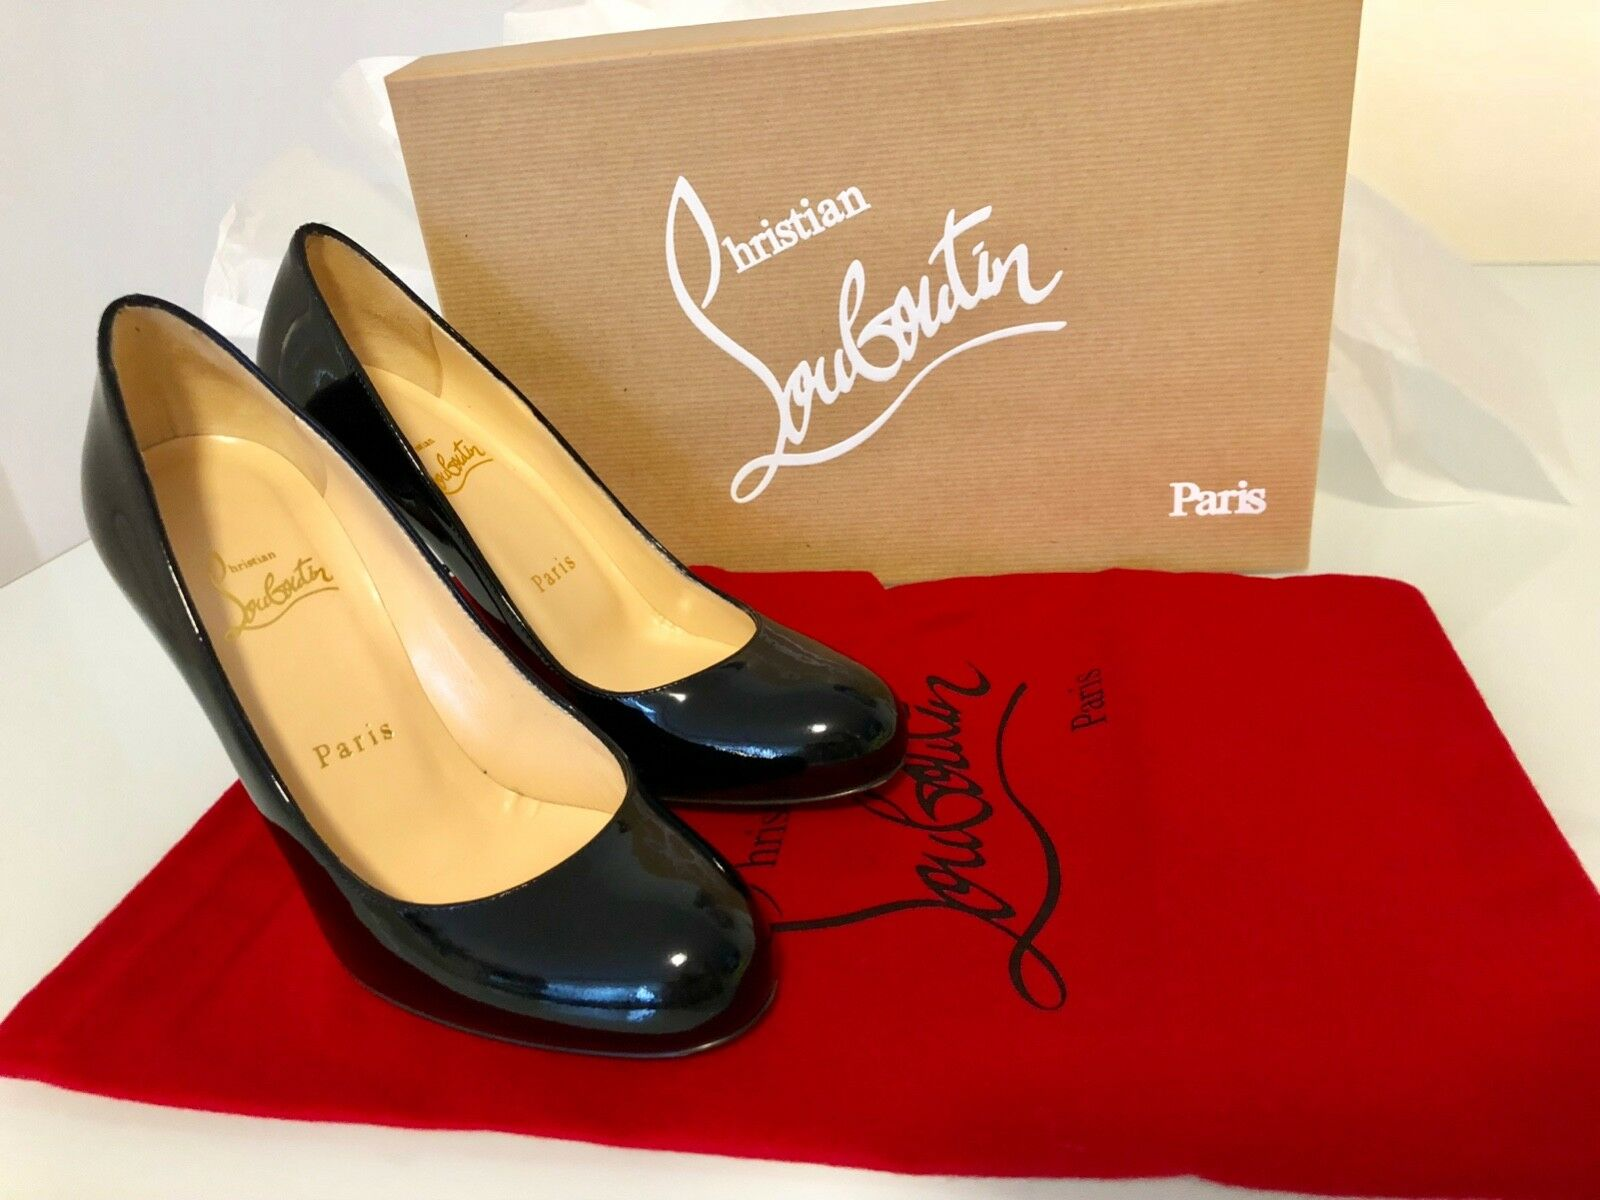 CHRISTIAN LOUBOUTIN Simple Pumps - Patent Leather Calf Size Size Size 36 (worn only once) c0a730